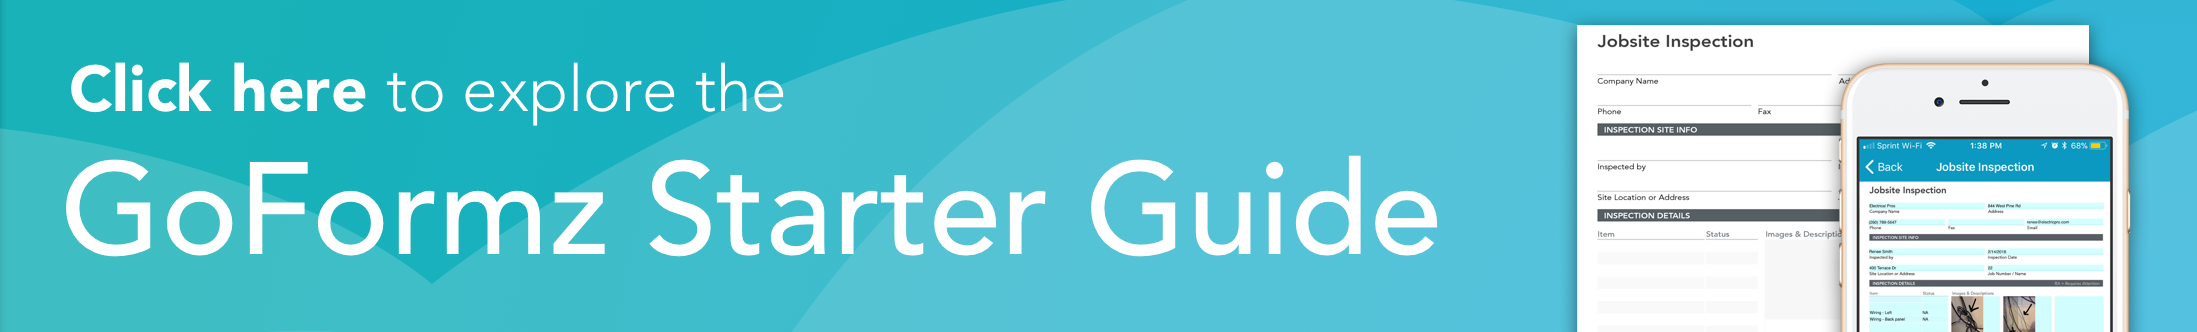 Banner: Click here to explore the GoFormz Starter Guide